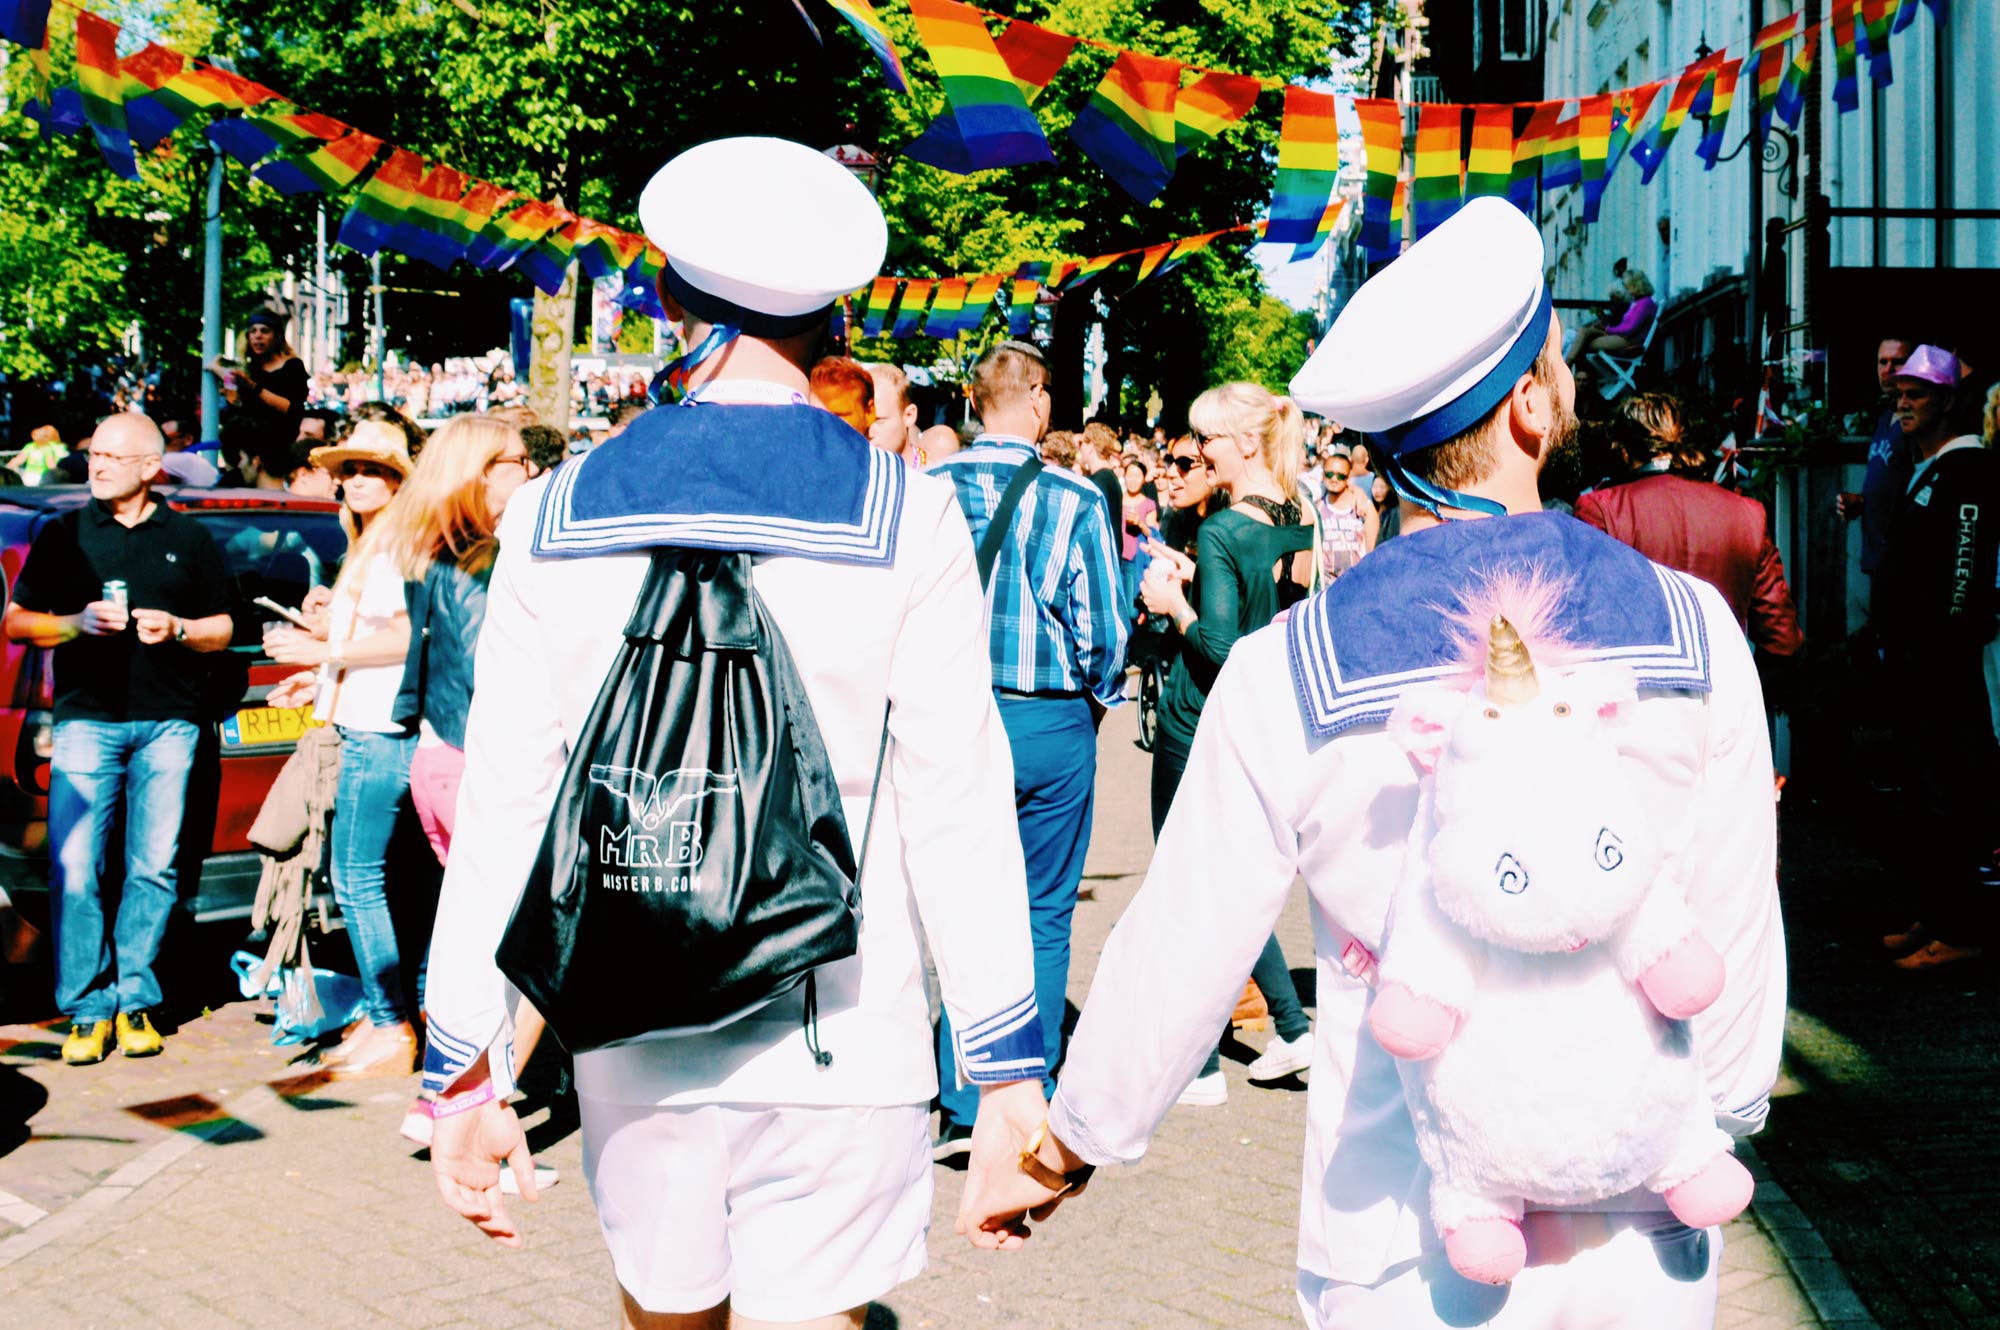 Gay Pride Amsterdam Programm Höhepunkte Tipps Amsterdam Canal Gay Pride Program Highlights Tips © CoupleofMen.com